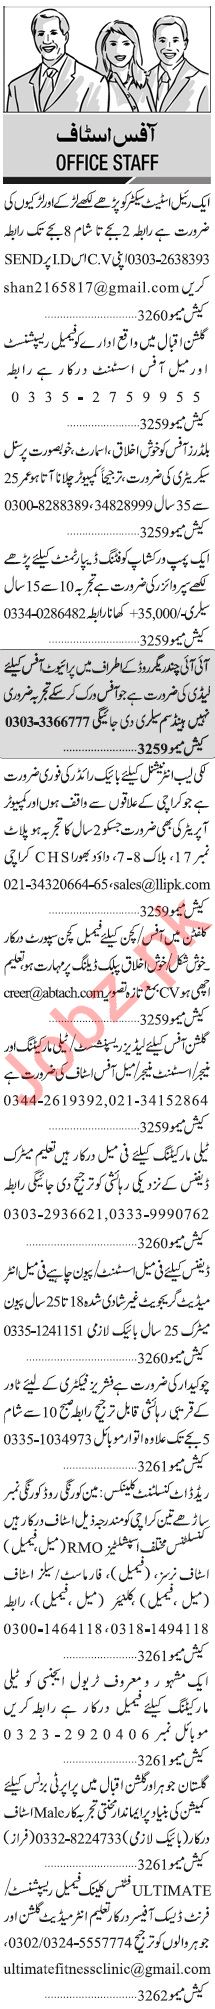 Jang Sunday Classified Ads 15th March 2020 for Office Staff